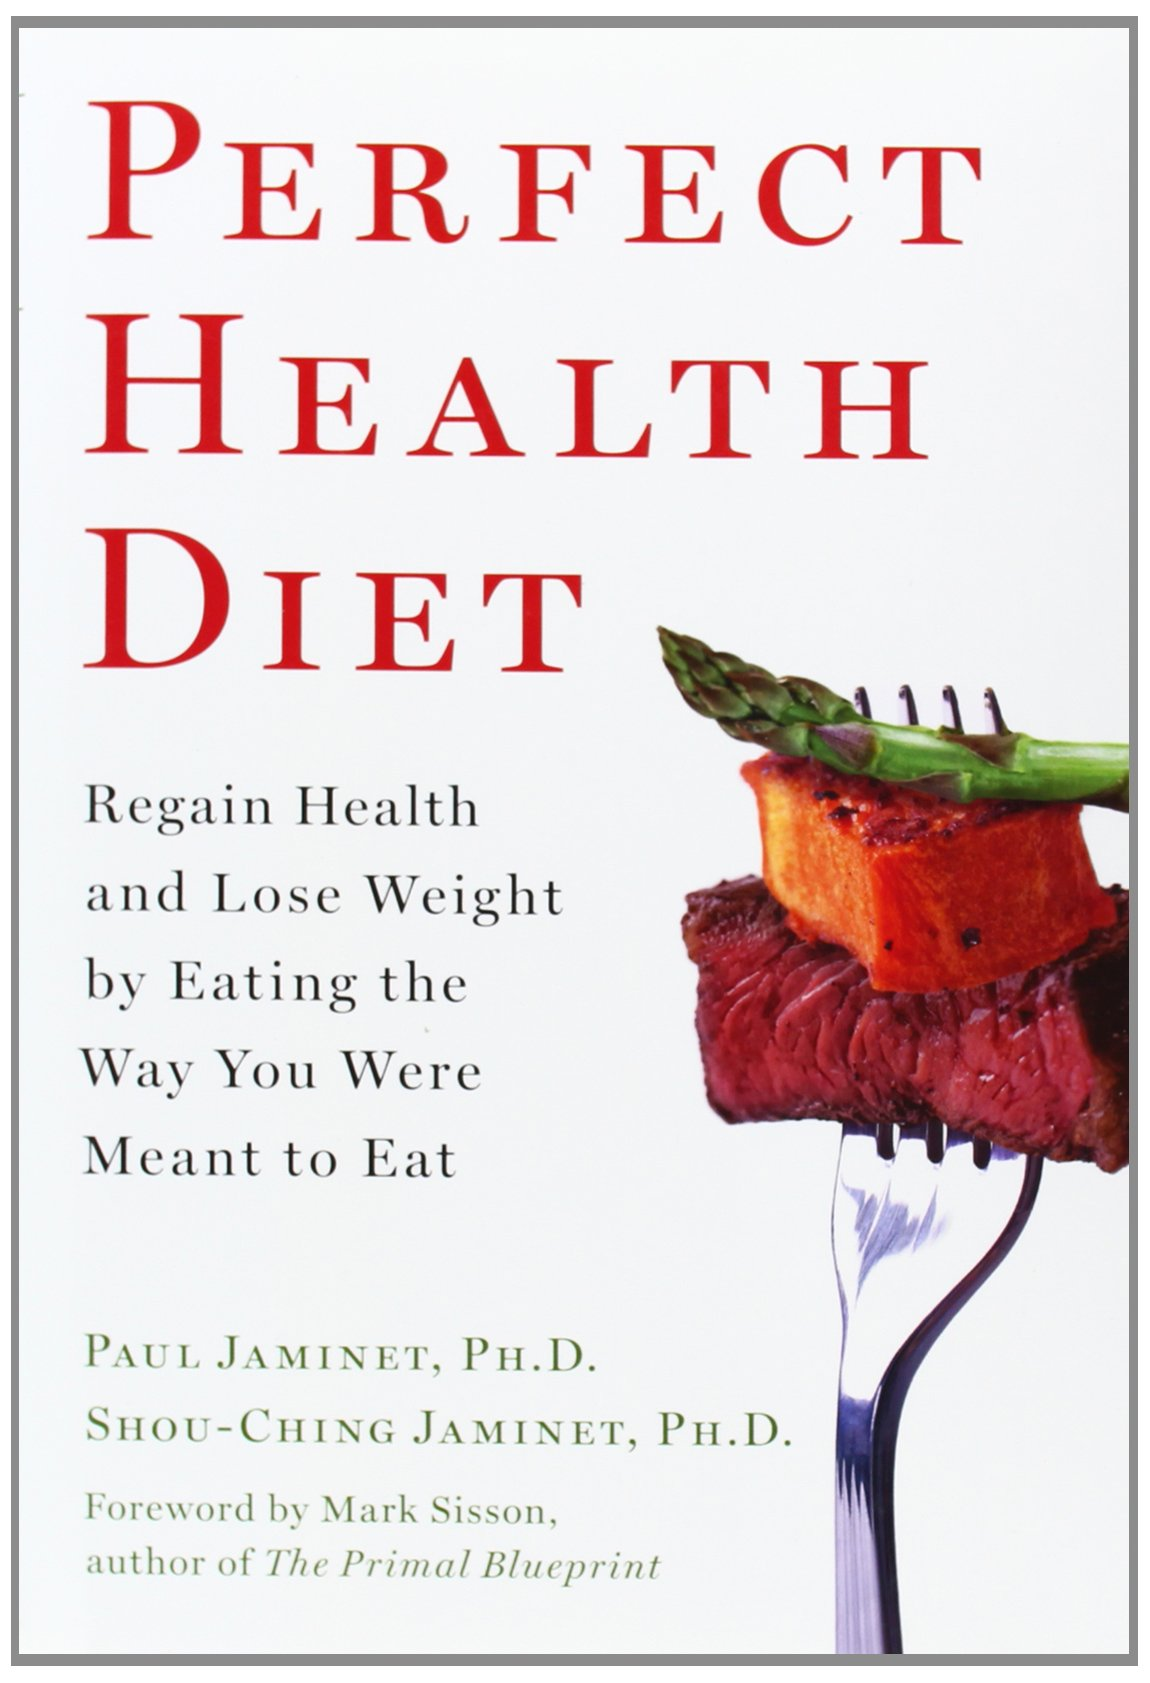 Perfect health diet regain health and lose weight by eating the way perfect health diet regain health and lose weight by eating the way you were meant to eat amazon paul jaminet books malvernweather Gallery